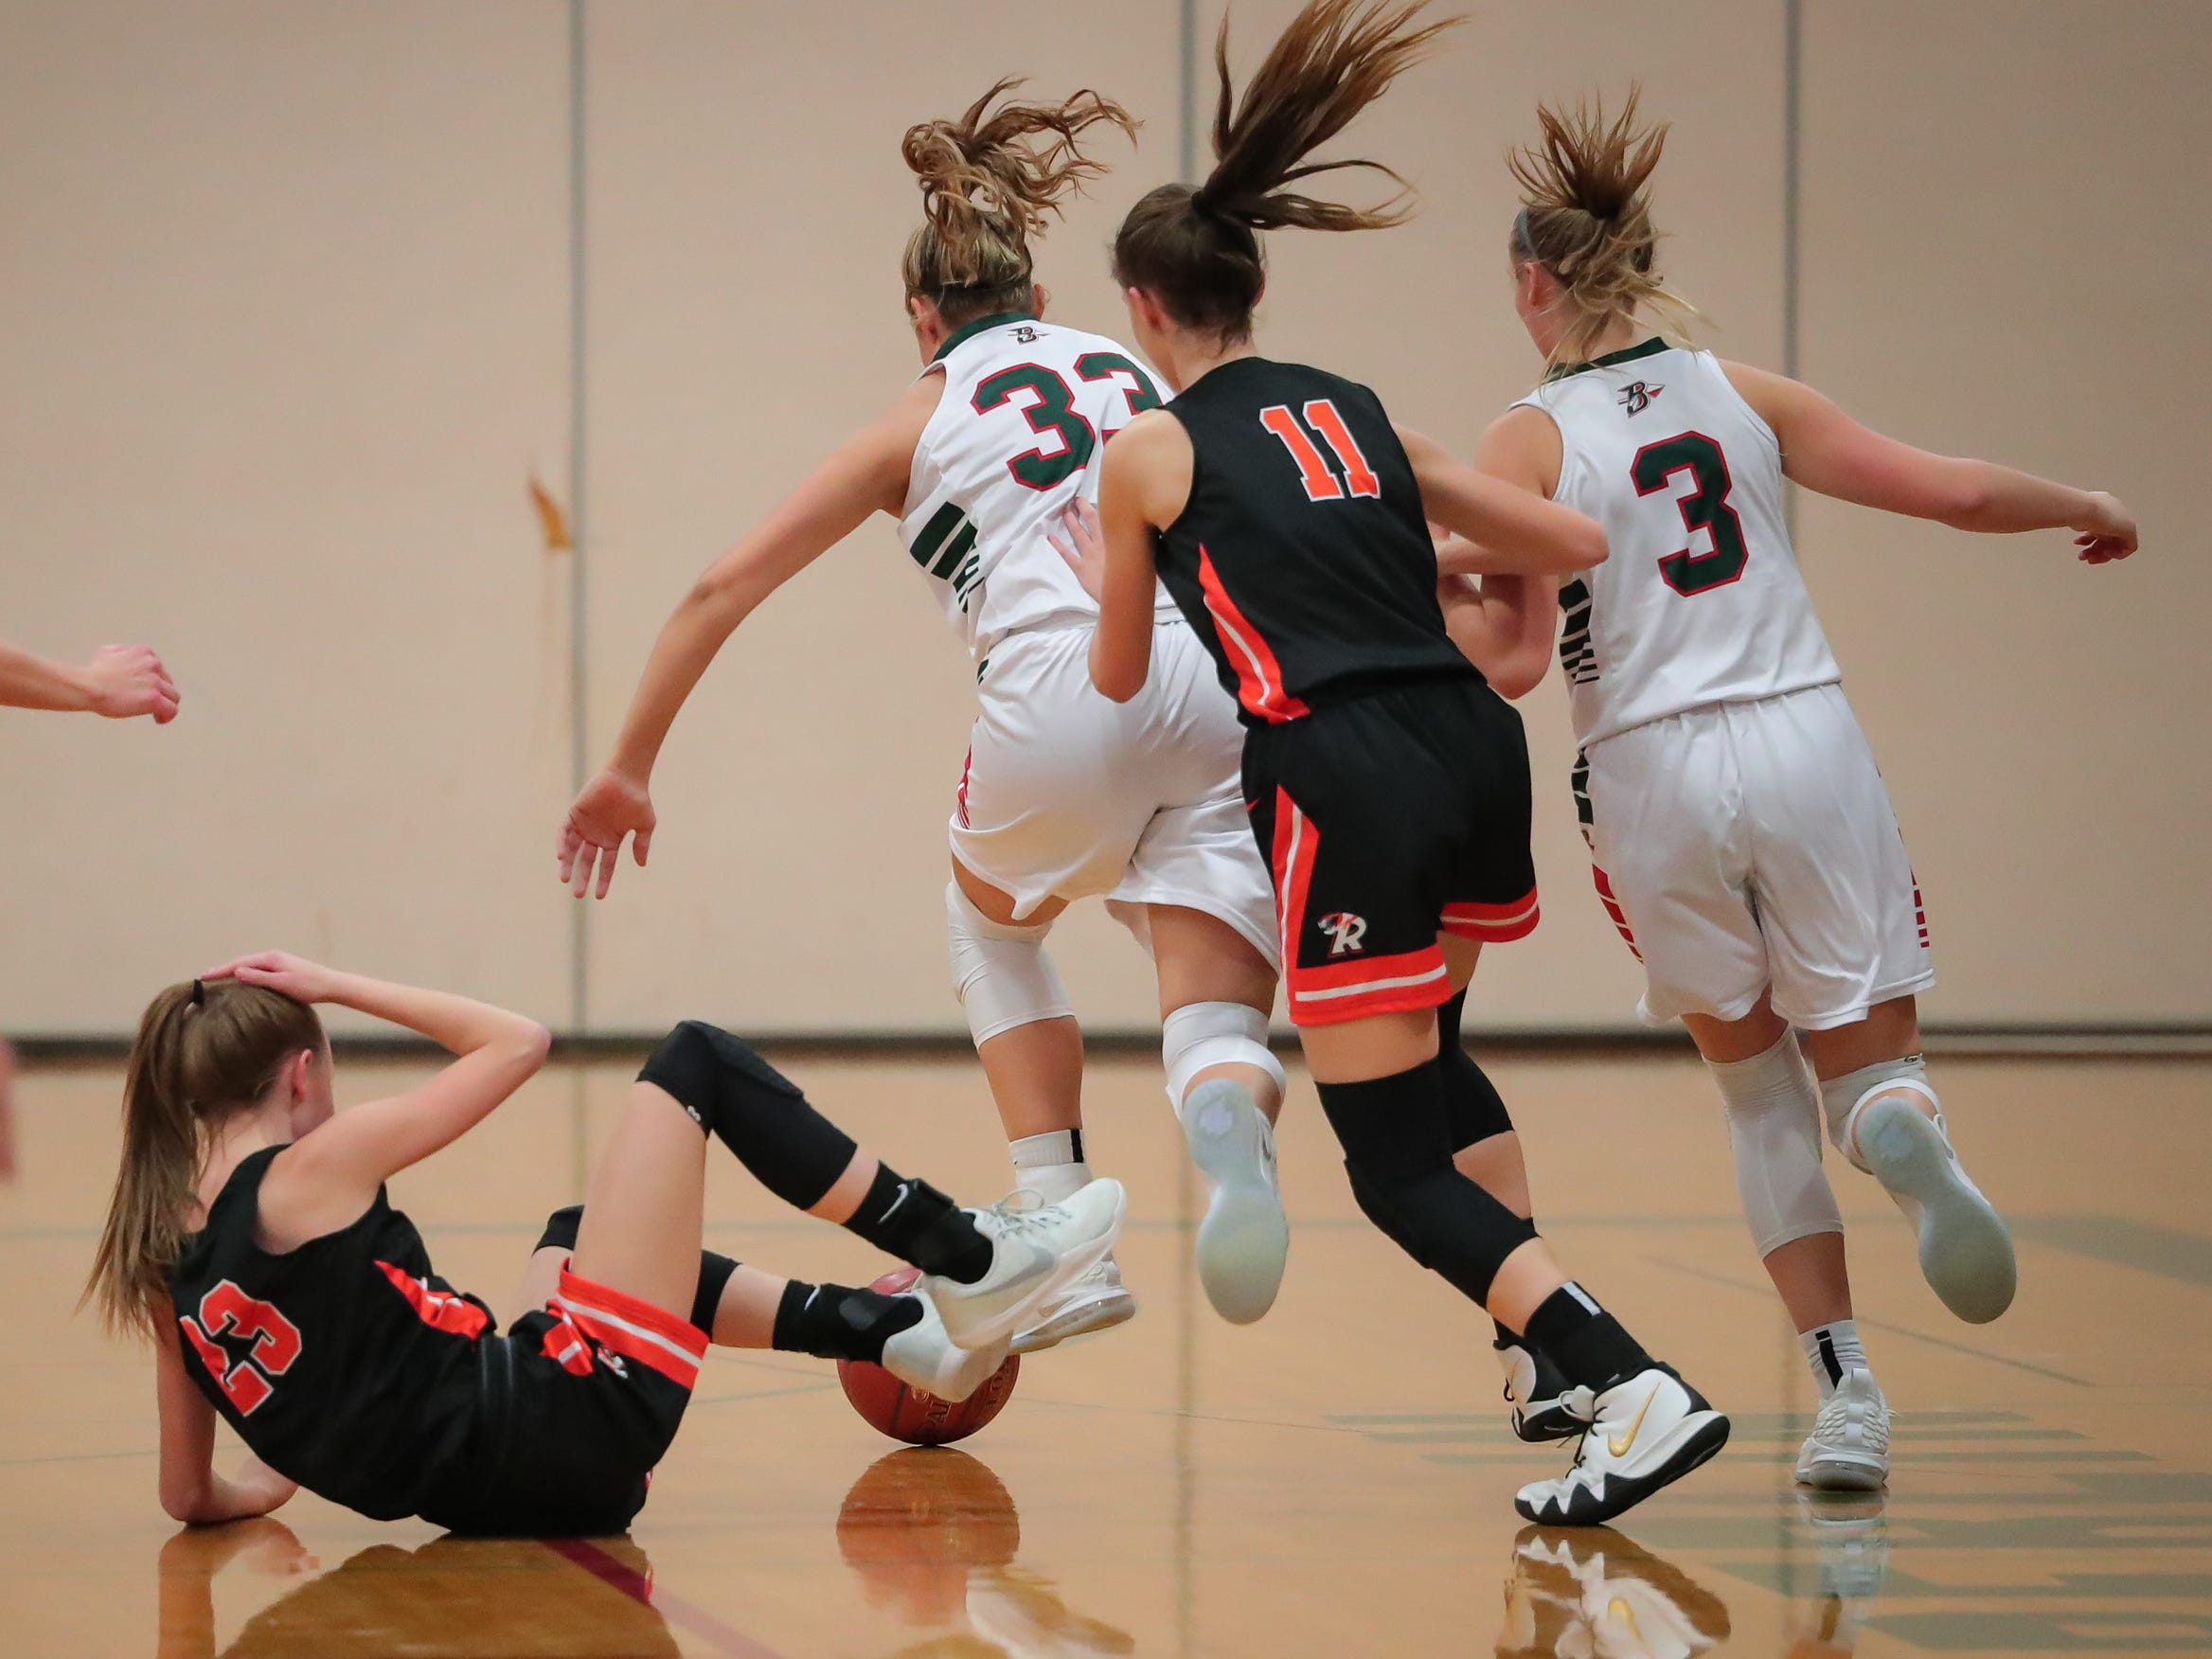 Madalyn Naparalla (33) of Berlin chases a loose ball. The Berlin Indians hosted the Ripon Tigers in an East Central Conference girls basketball matchup Friday evening, December 21, 2018.